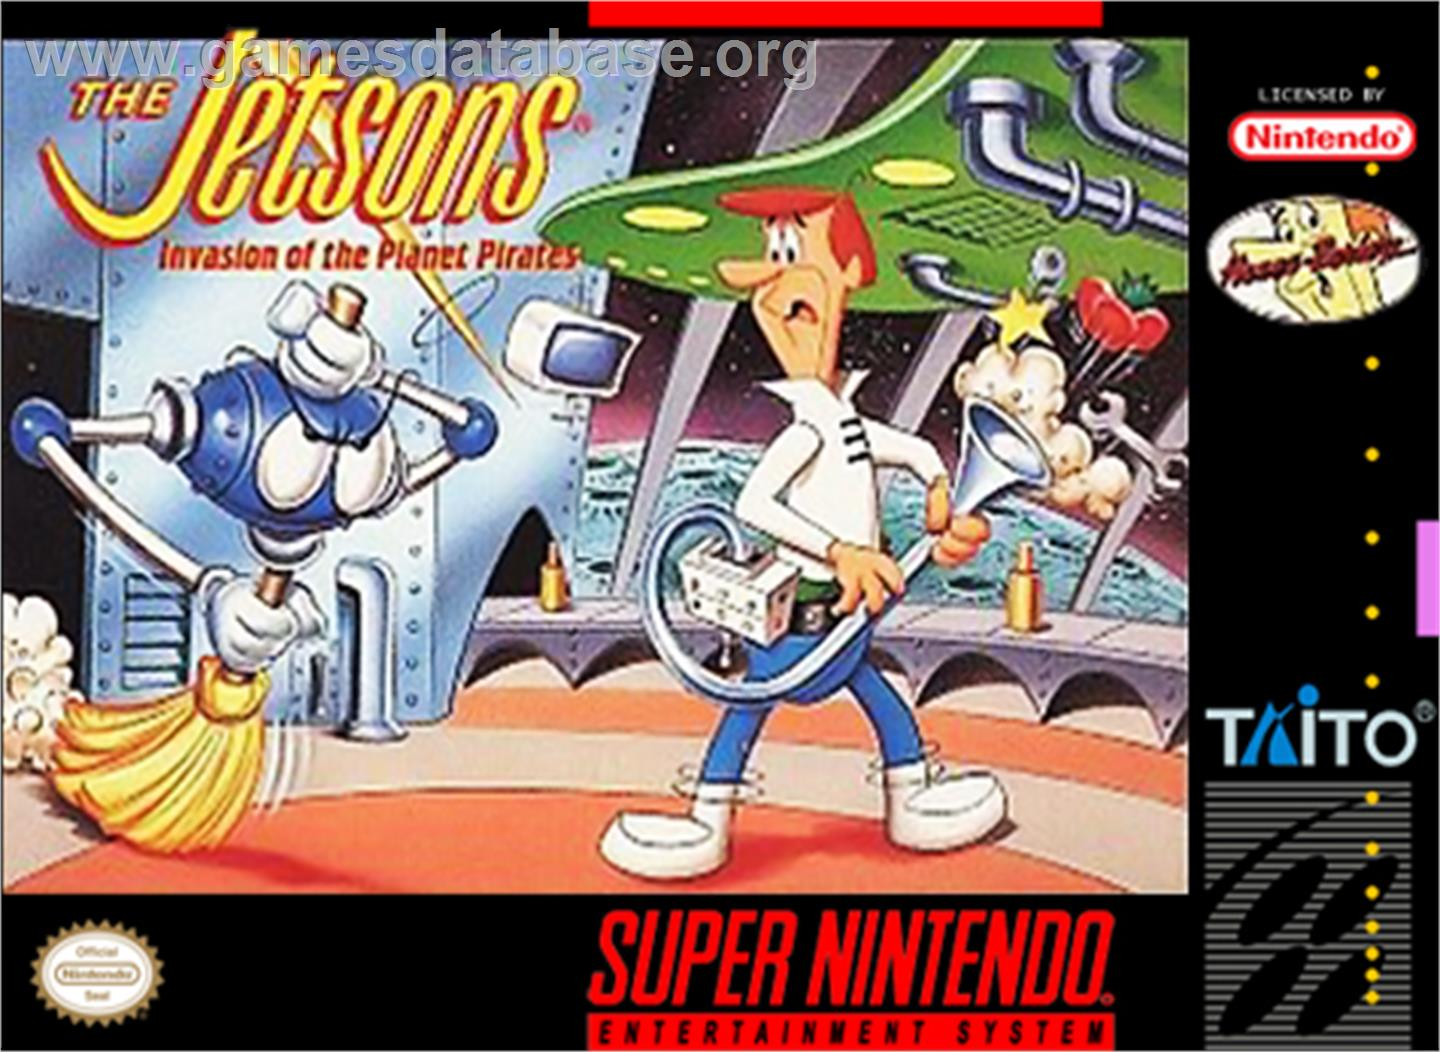 The Jetsons: Invasion of the Planet Pirates - Nintendo SNES - Artwork - Box